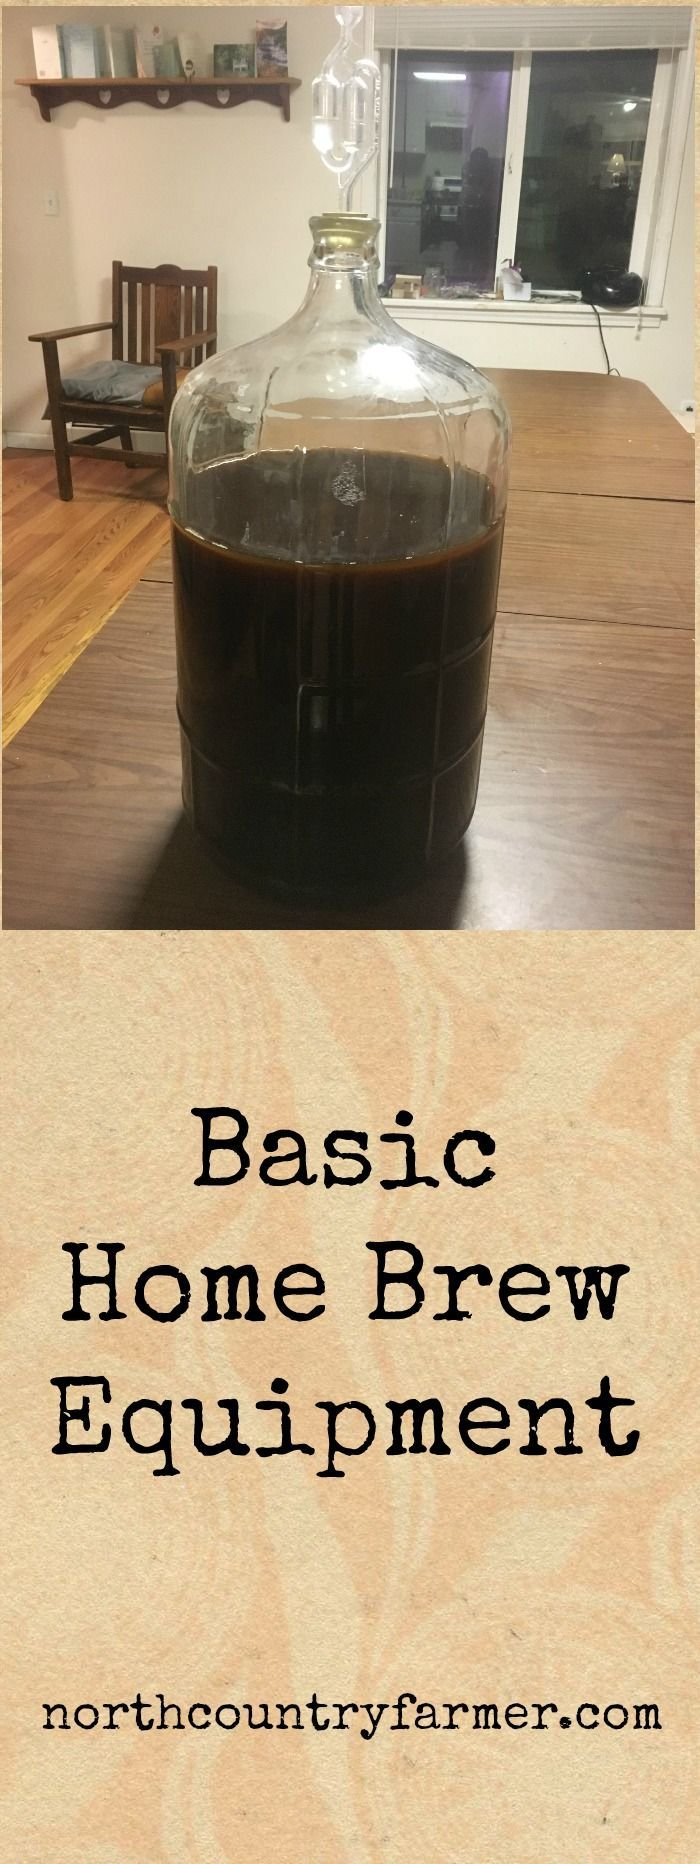 Home wine making and beer brewing recipes quality wine - Making Your Own Beer Or Wine At Home Is Not Very Difficult With This Basic